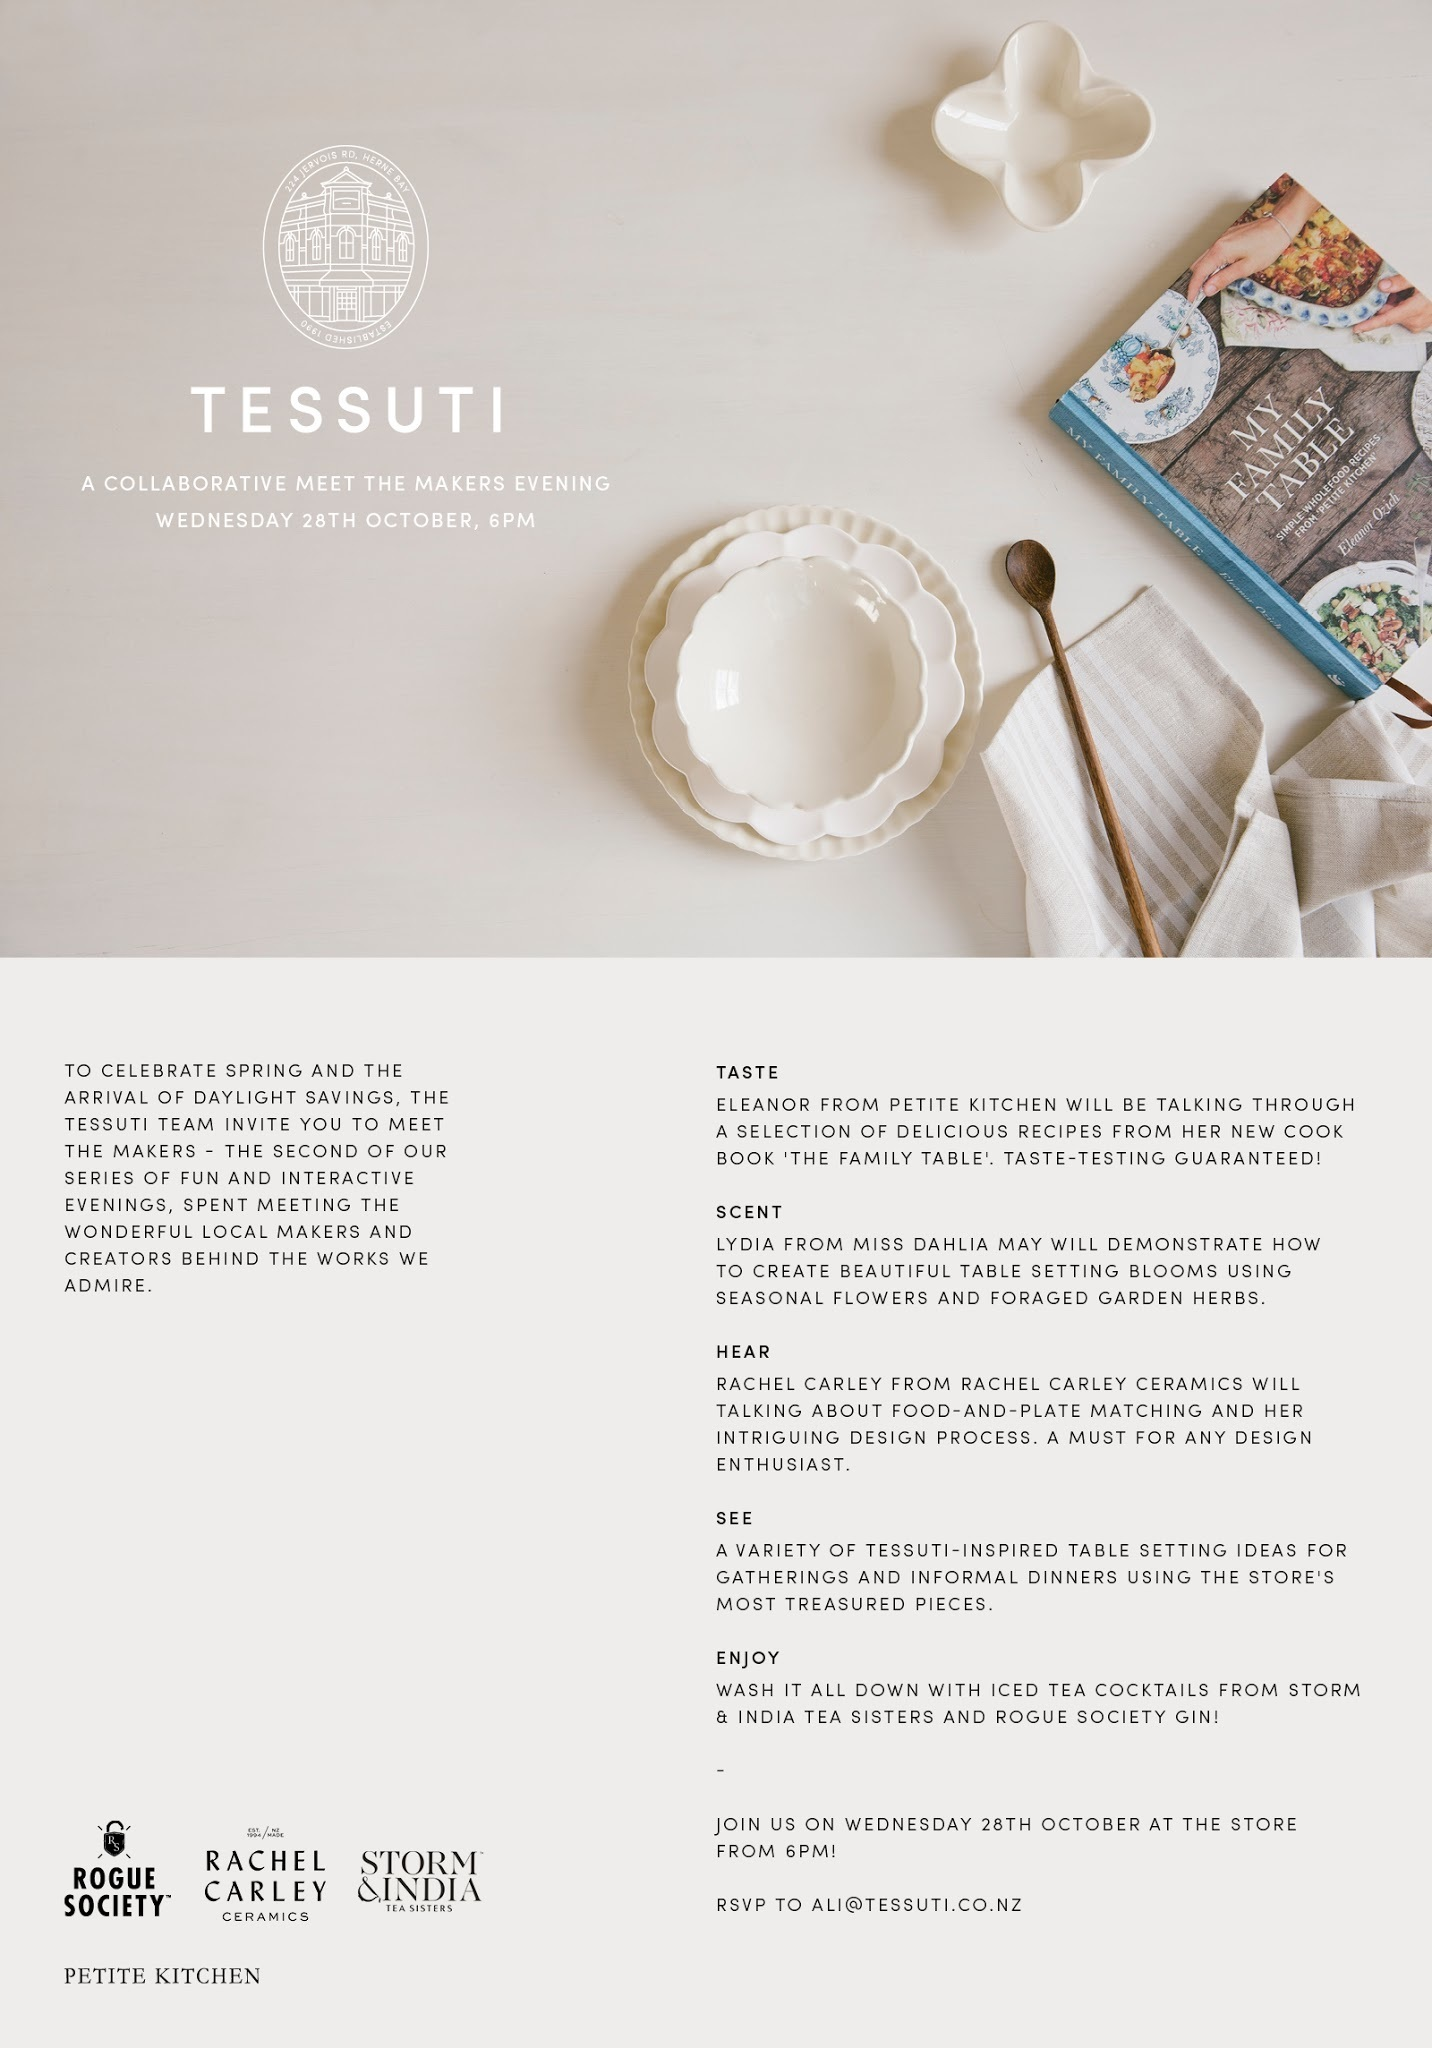 MEET THE MAKERS EVENING AT TESSUTI